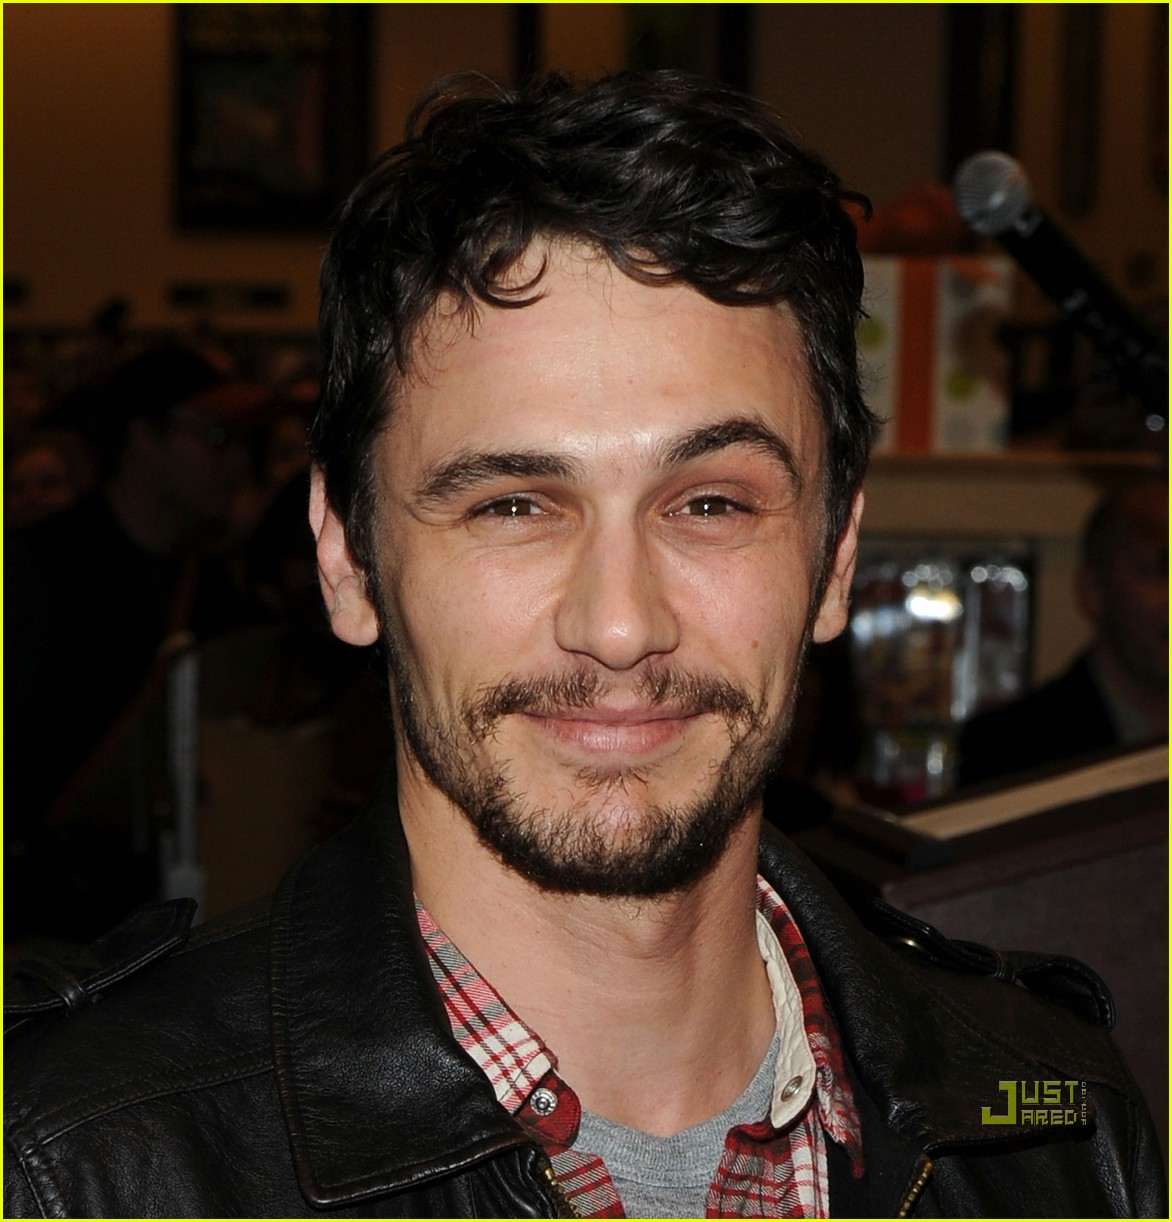 James Franco Palo Alto Signing In Nyc Photo 2489203 border=